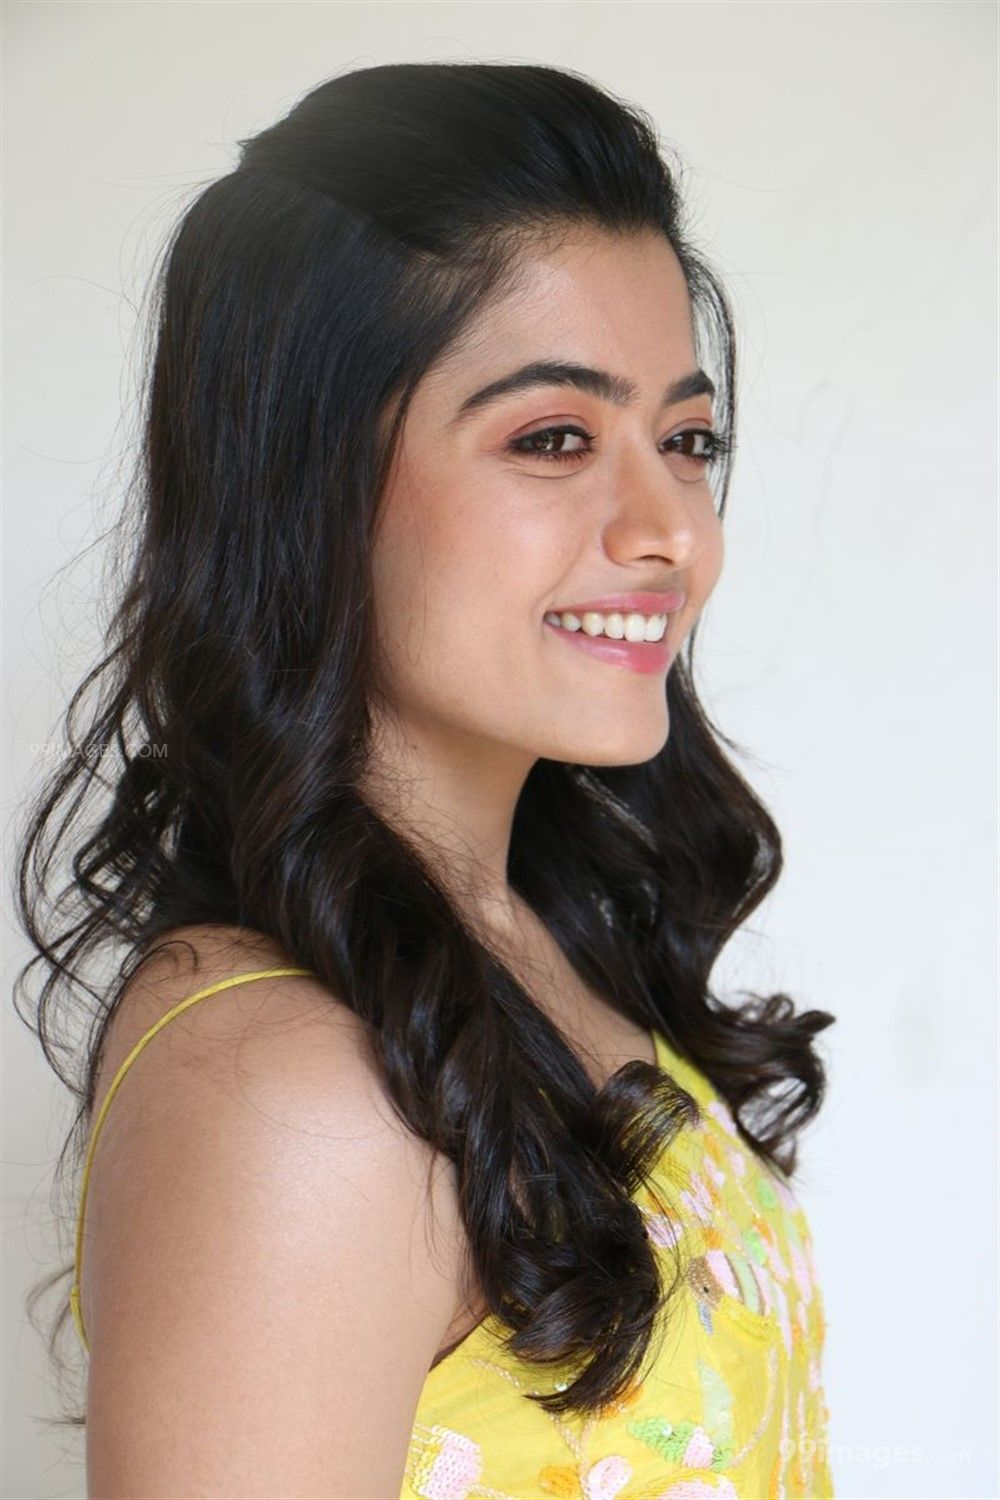 Rashmika Mandanna Beautiful HD Photos & Mobile Wallpapers HD (Android/iPhone) (1080p) (363786) - Rashmika Mandanna